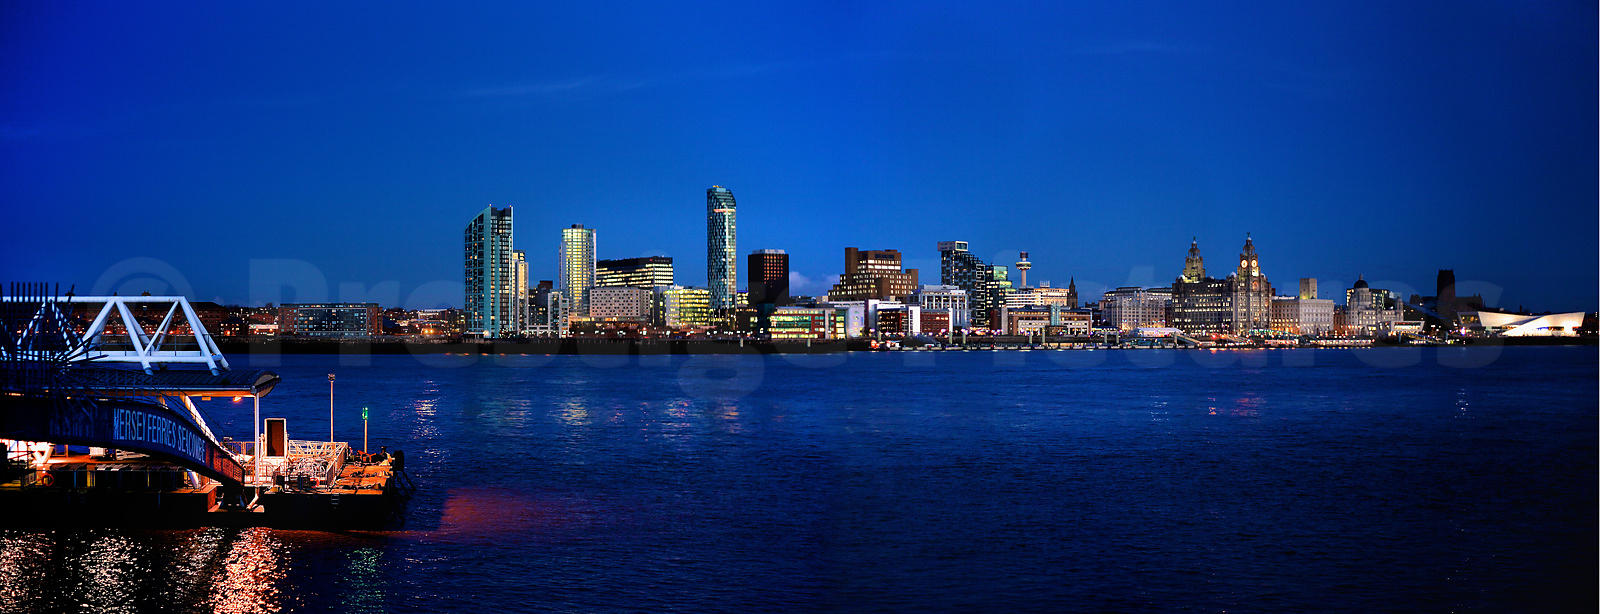 The Lights of Liverpool Across the Mersey from the Seacombe Ferry Terminal at Night